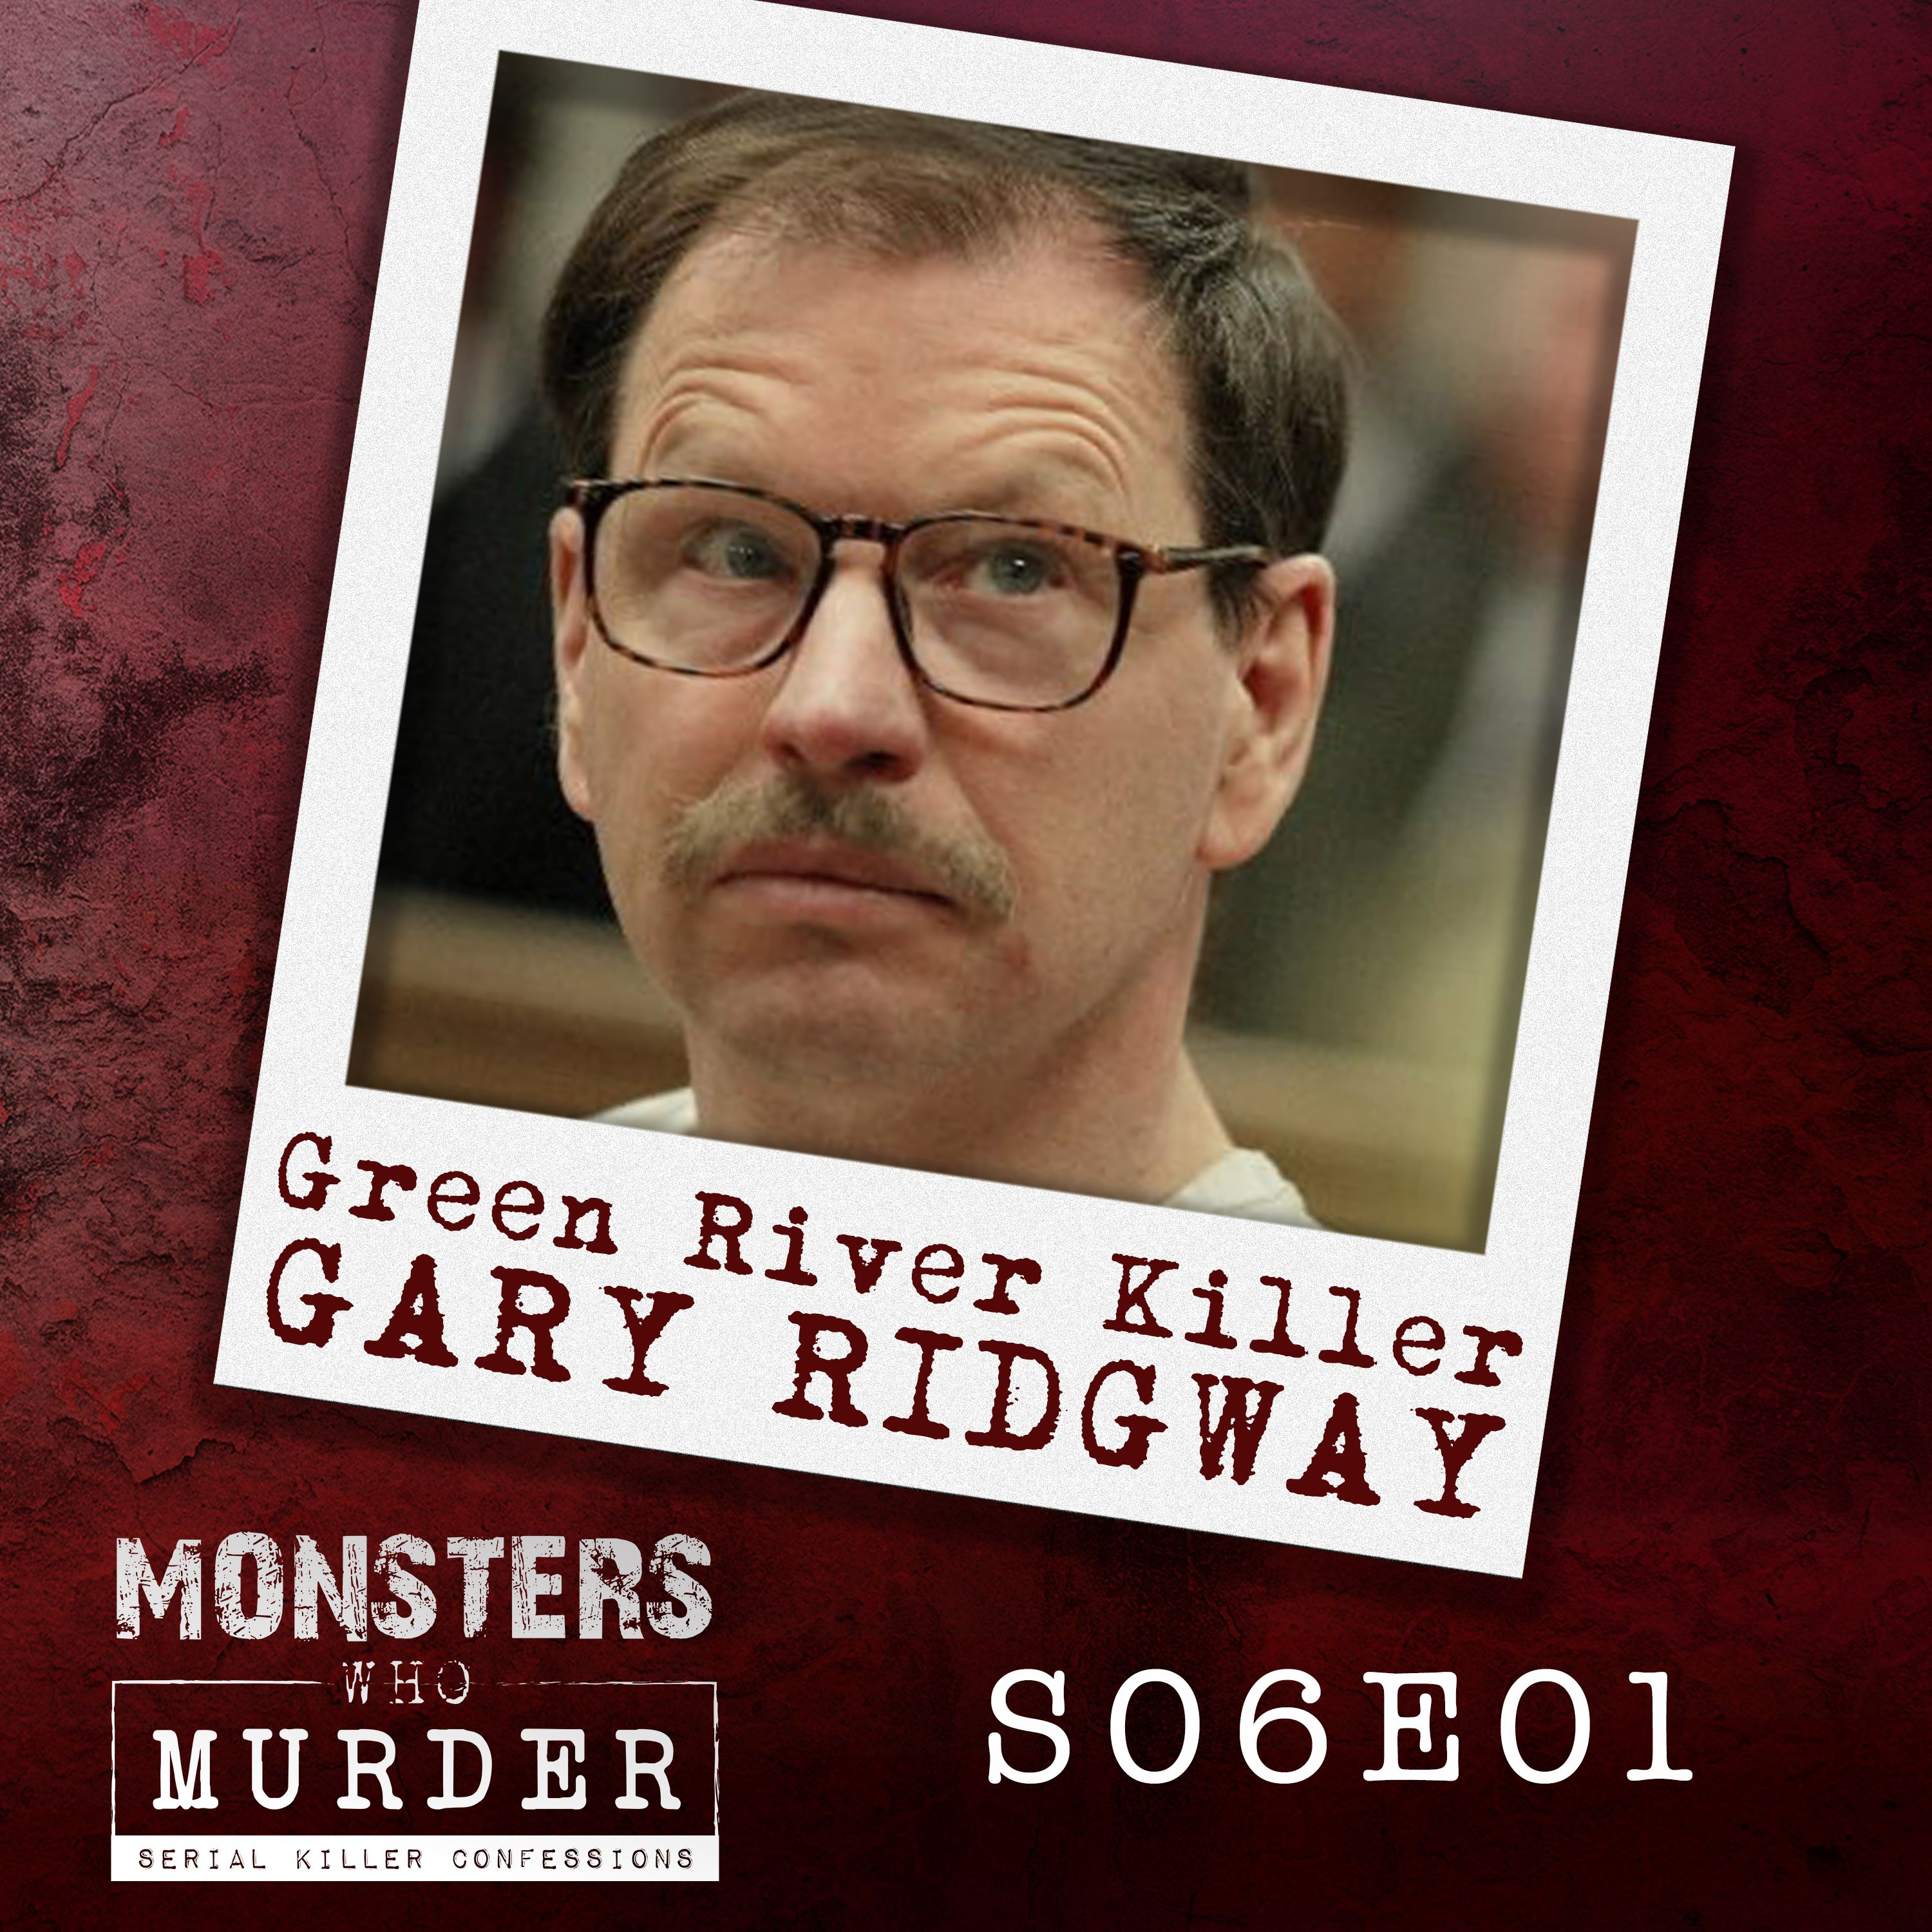 S06E01 The Green River Killer - Gary Ridgway PLUS Todd Kohlhepp, Billy Chemirmir, Roberta Williams